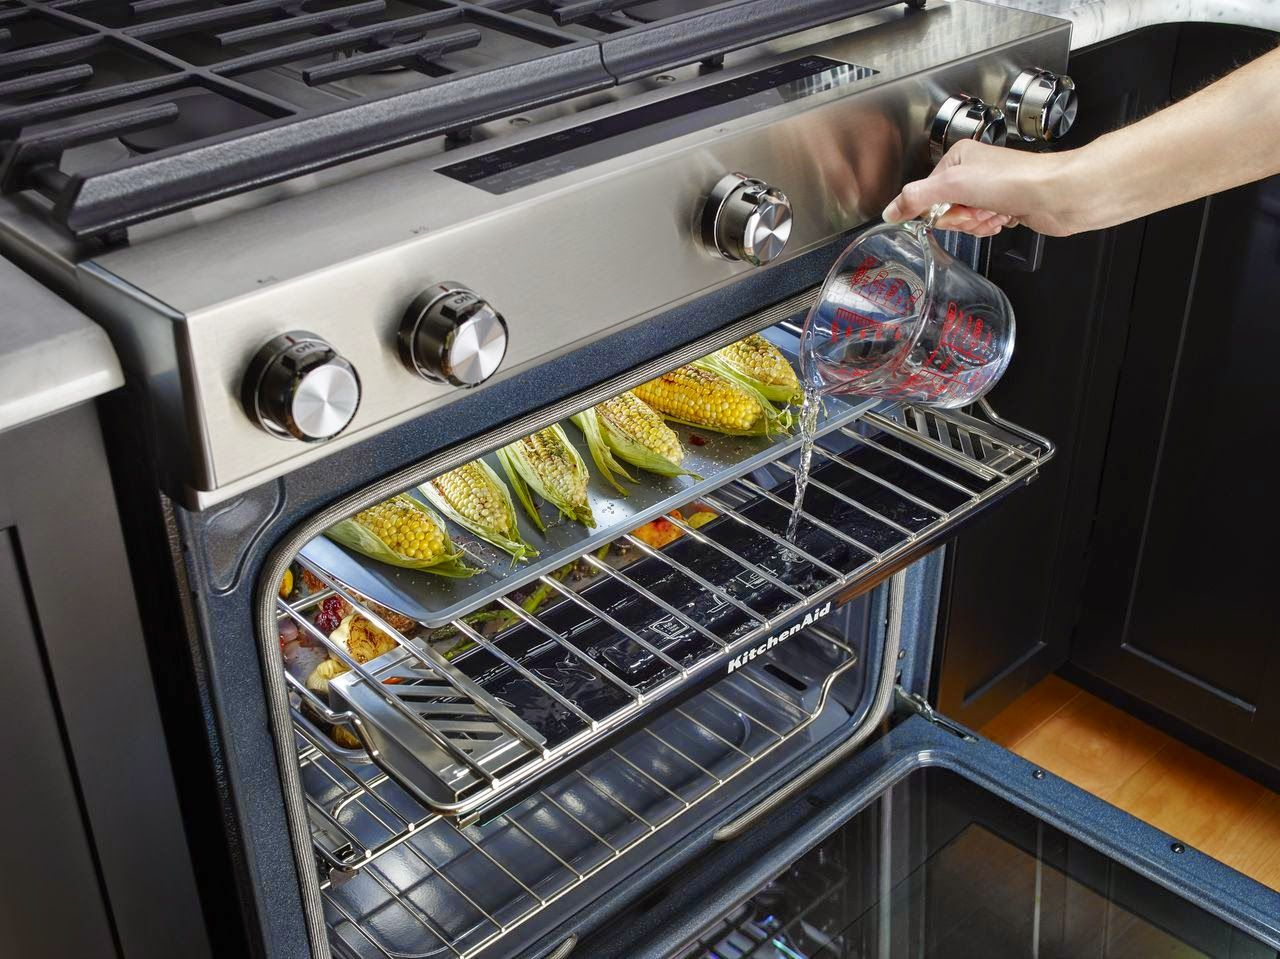 a5e6c9ad3fd14480010d816e6ef6c16c Kitchenaid Slide In Gas Range With Warming Drawer